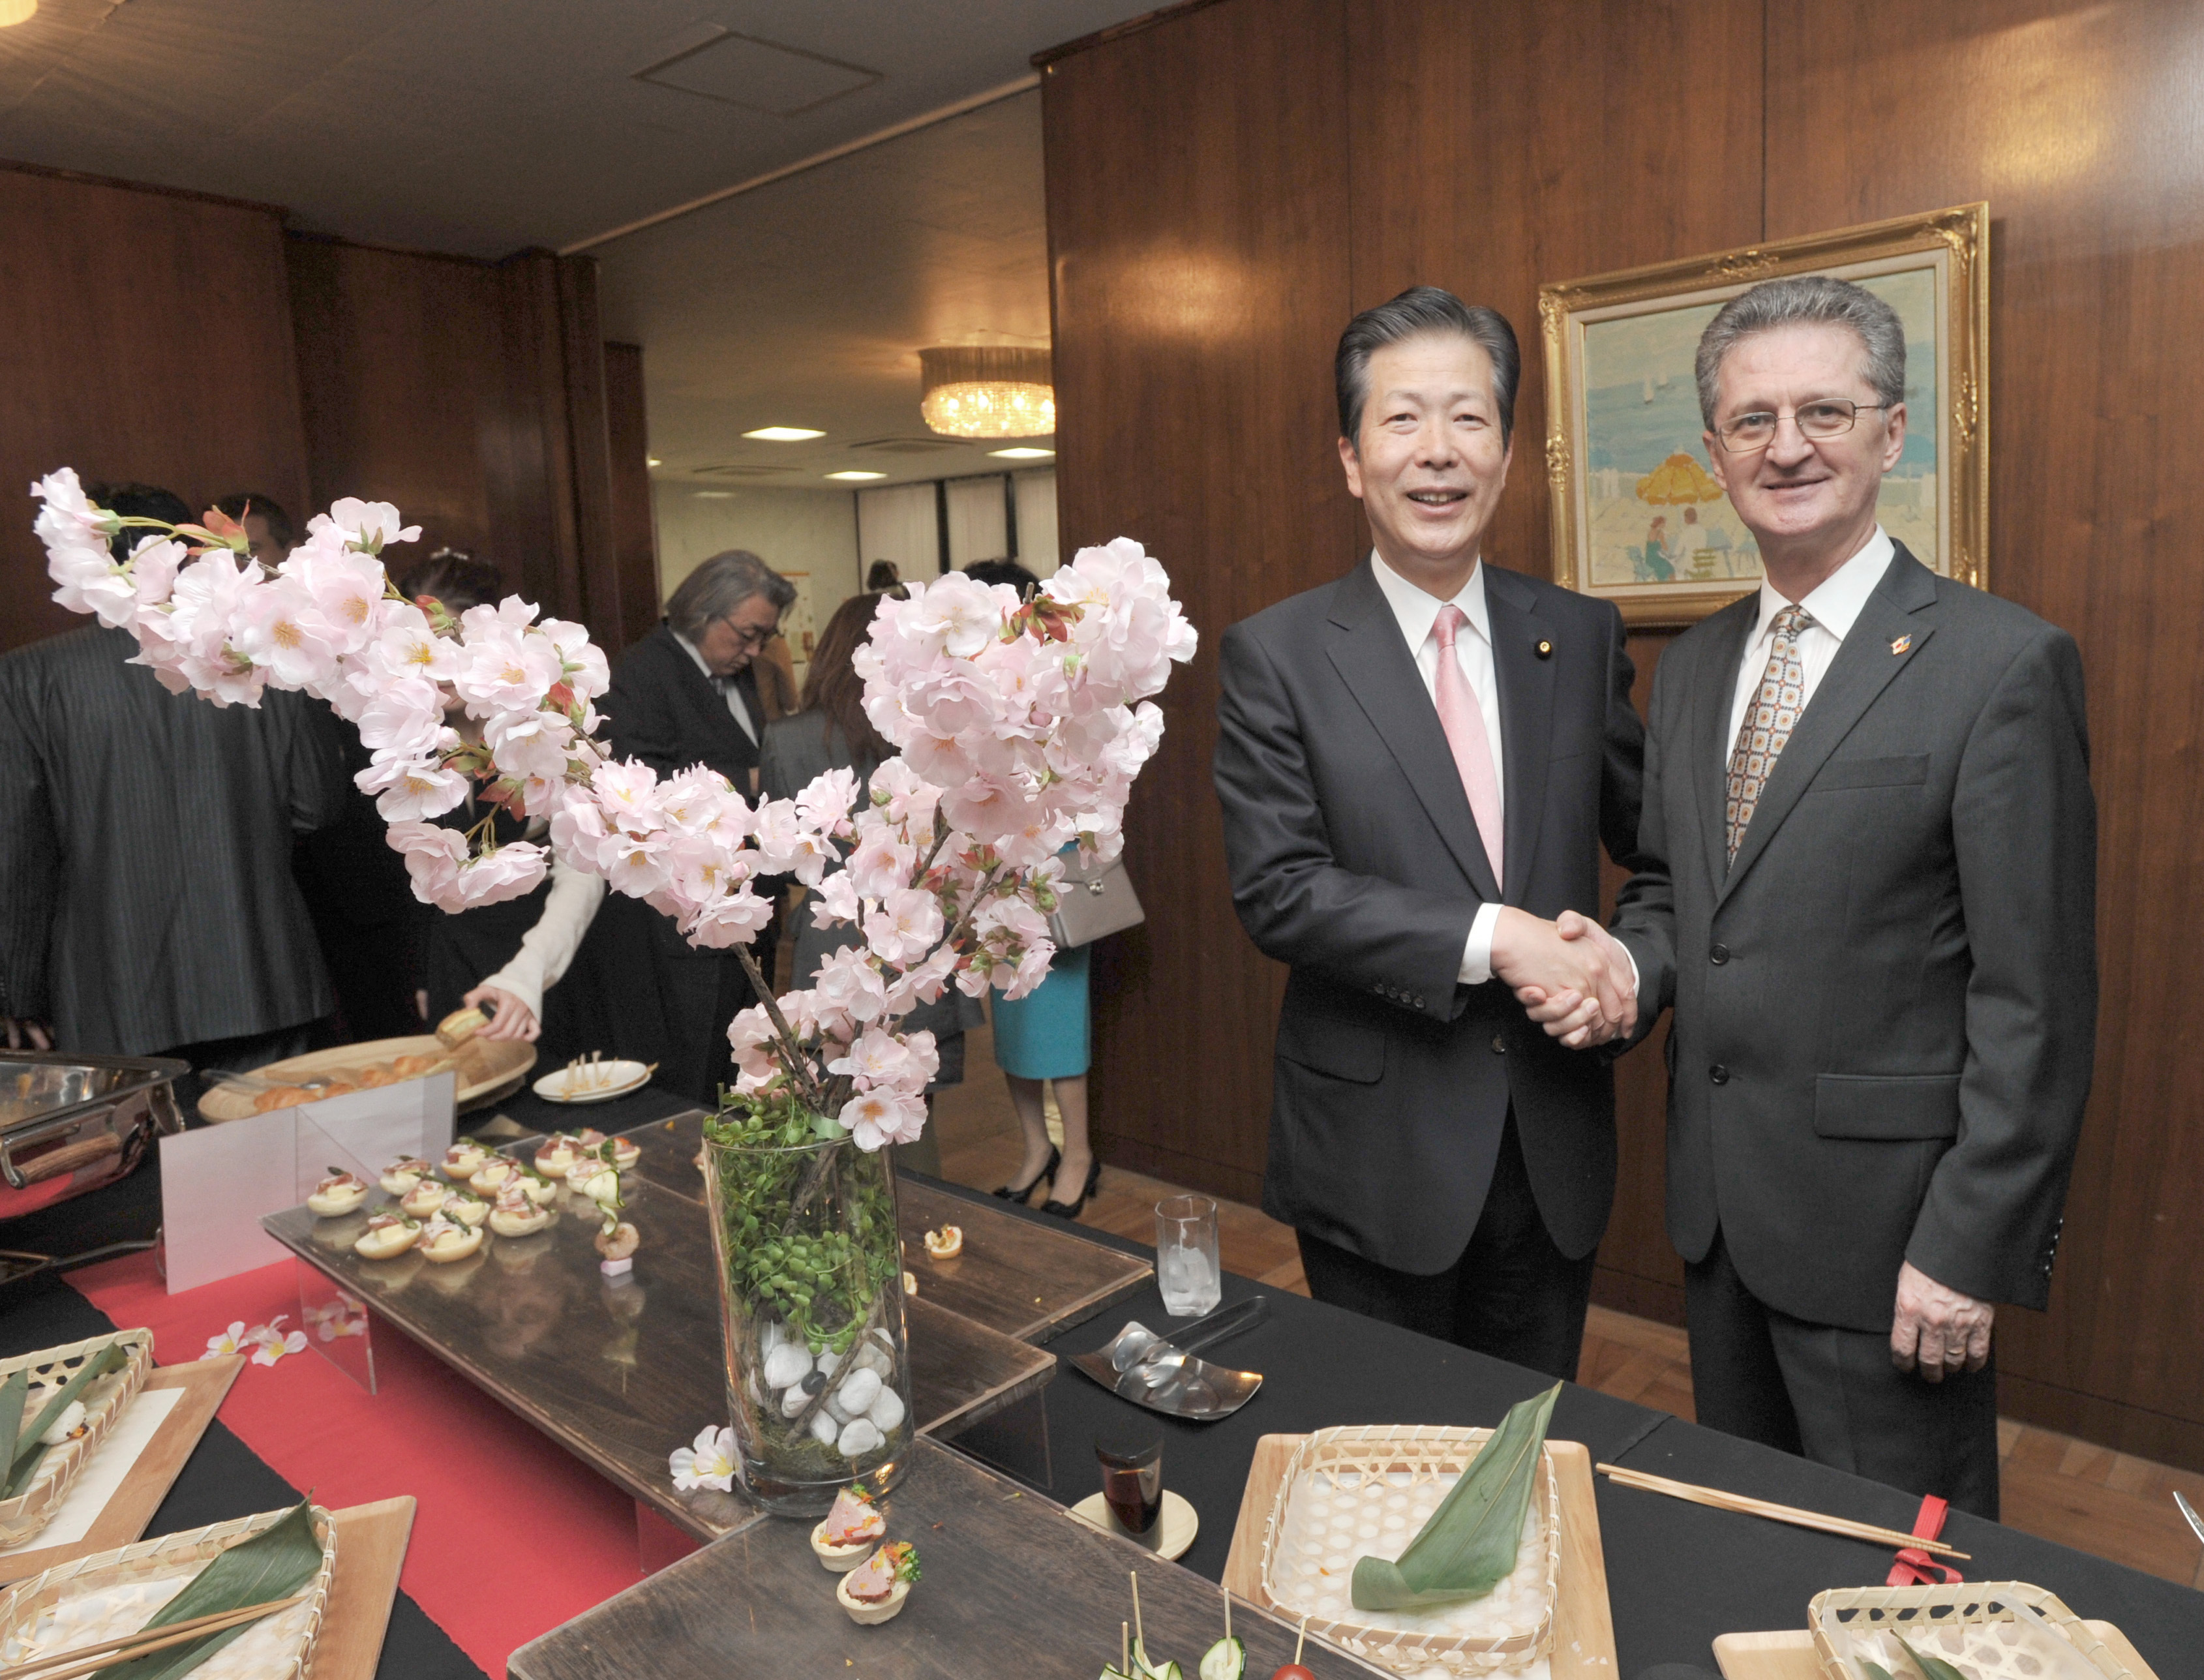 Romanian Ambassador Radu Serban (right) shakes hands  with Komeito leader Natsuo Yamaguchi during a cherry blossom viewing party at the embassy in Tokyo on March 30. | YOSHIAKI MIURA